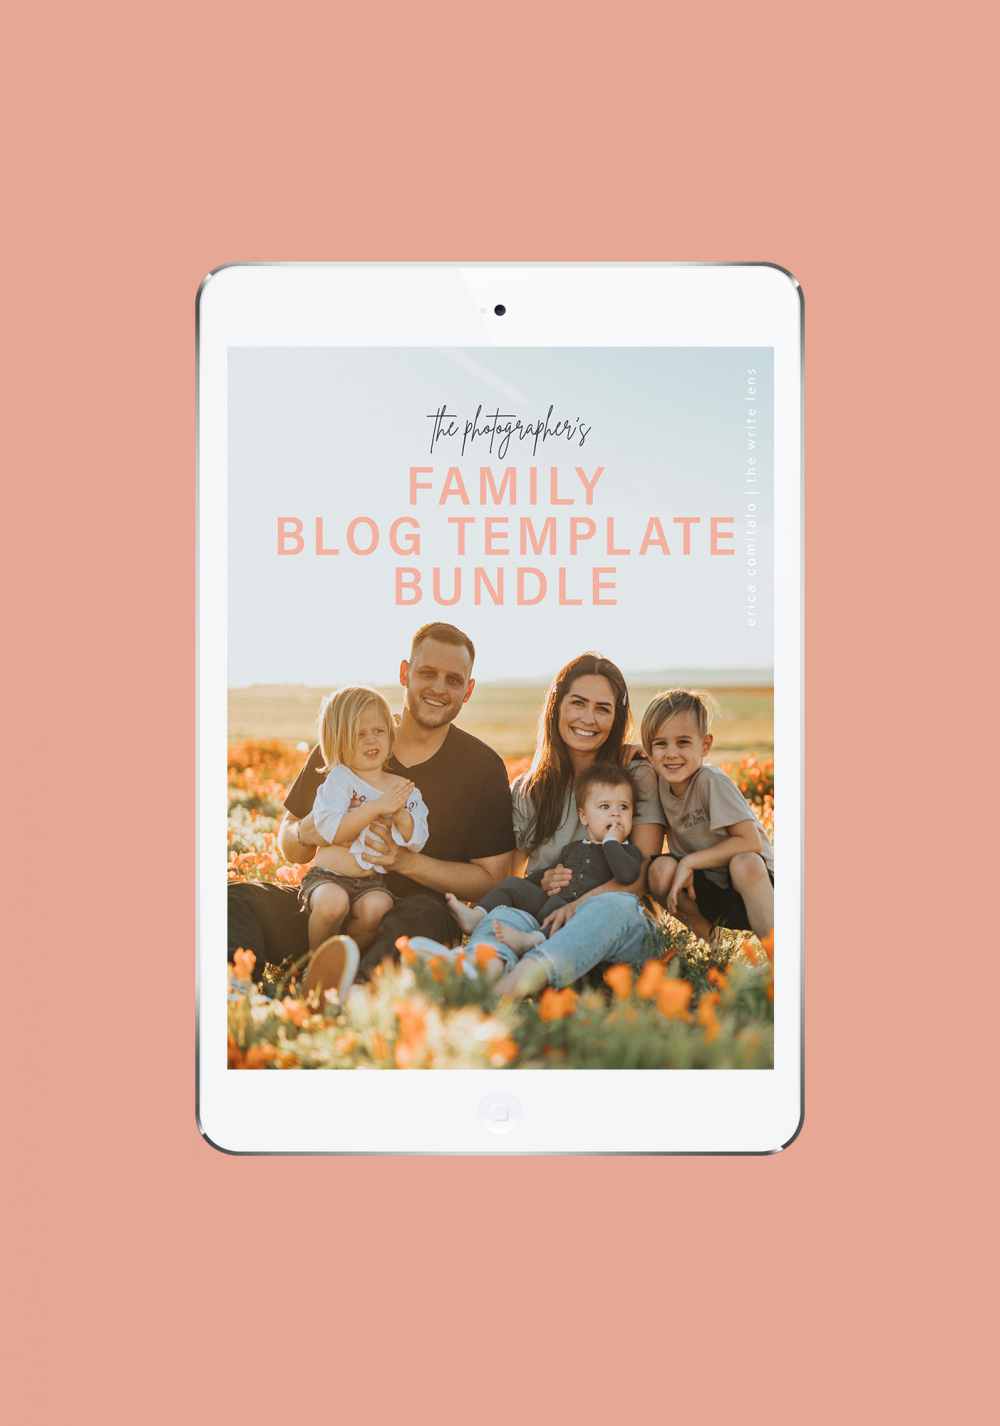 Family blog template bundle promo image